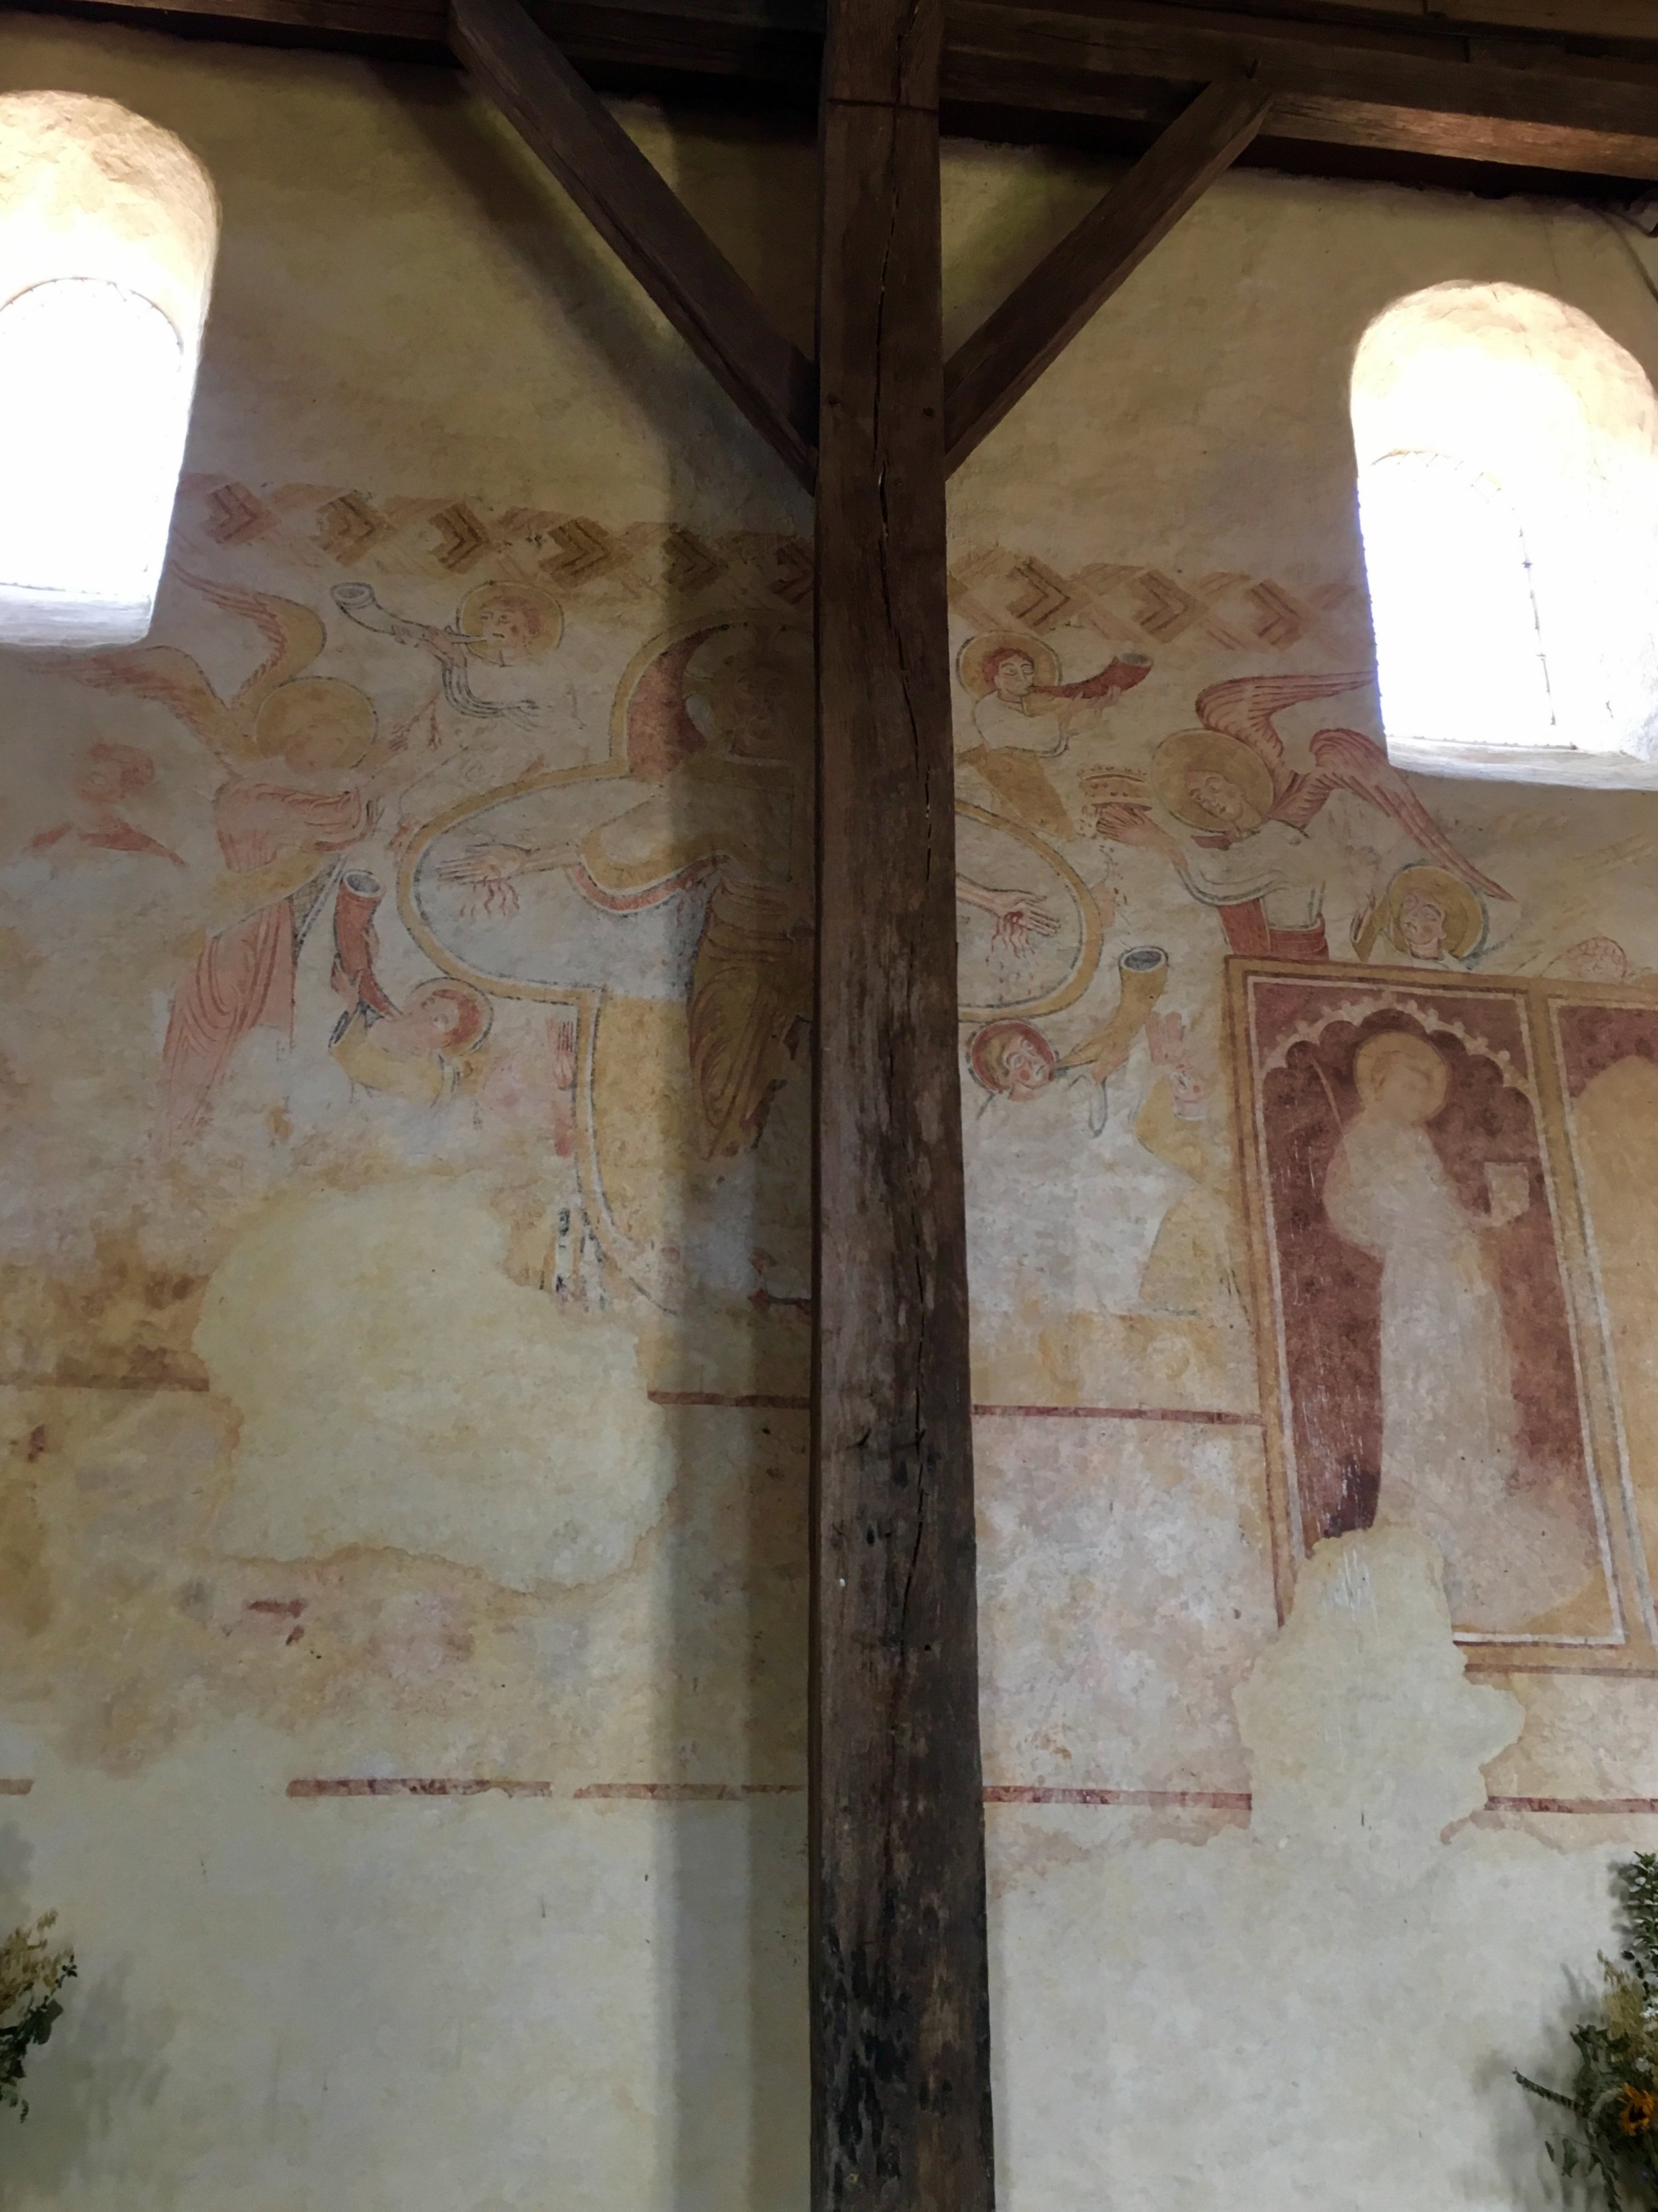 12th century frescoes in the  Eglise St. Pierre (photograph J. Cook)